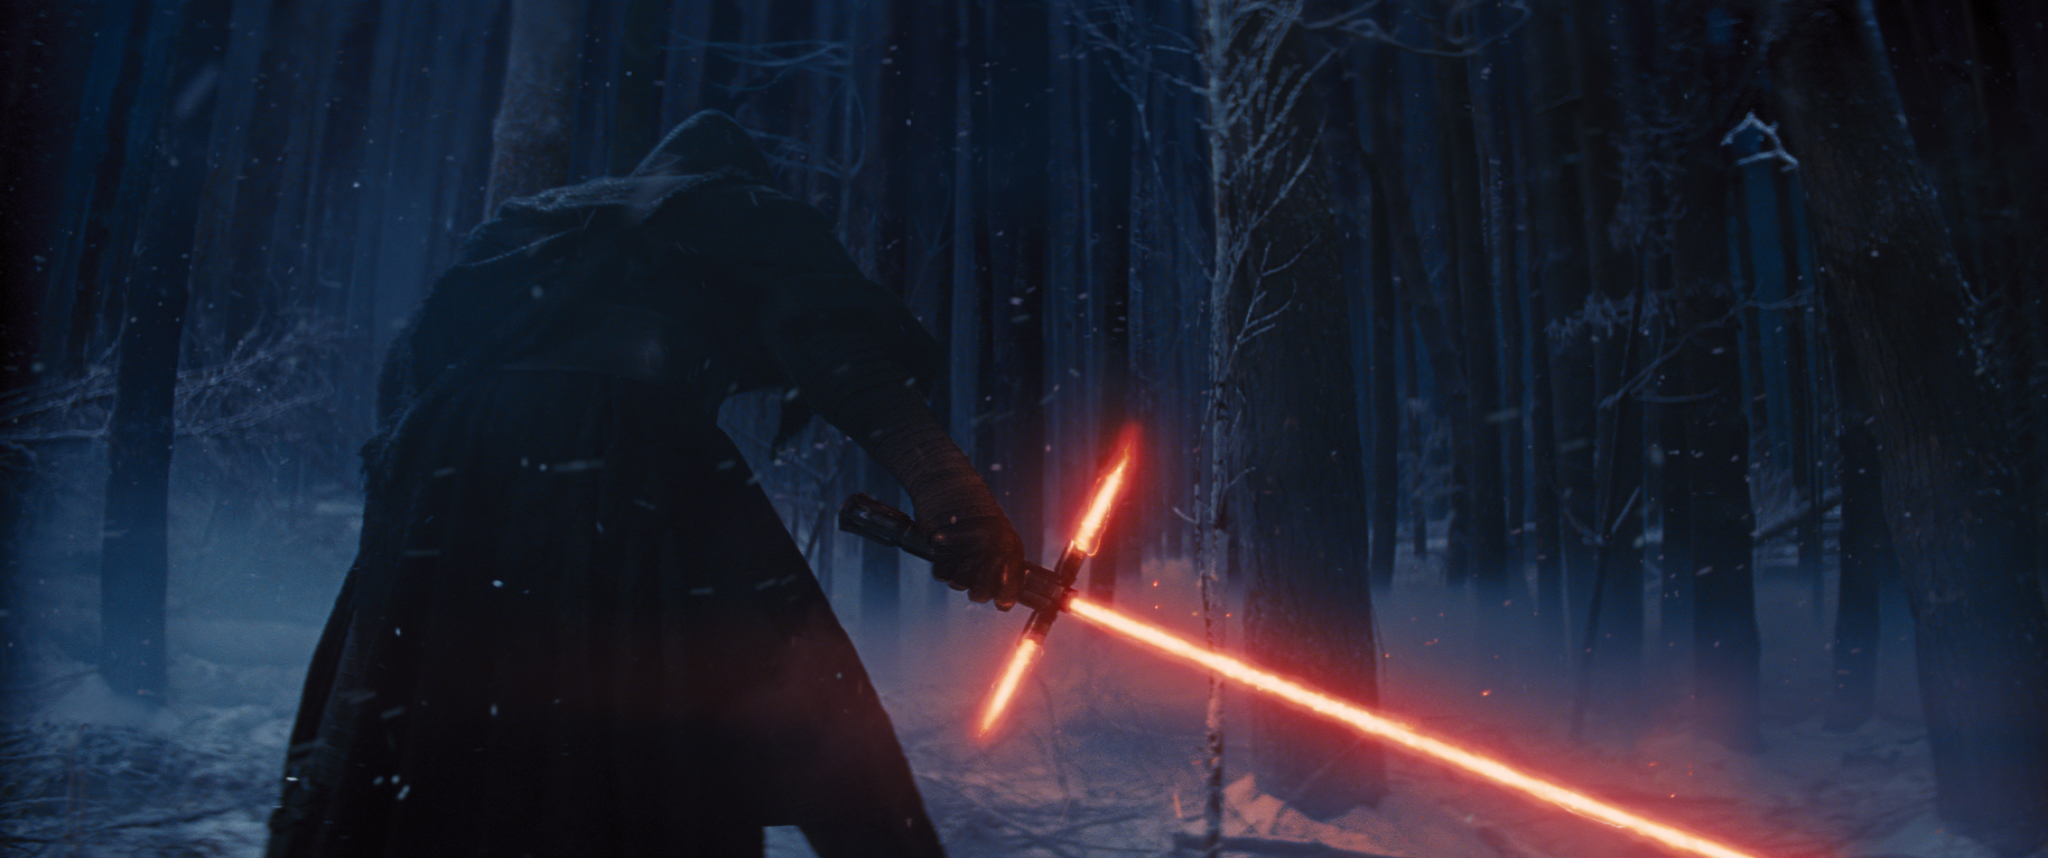 Blue flare hd desktop wallpaper hd latest wallpapers - High Res Images Released From Star Wars The Force Awakens